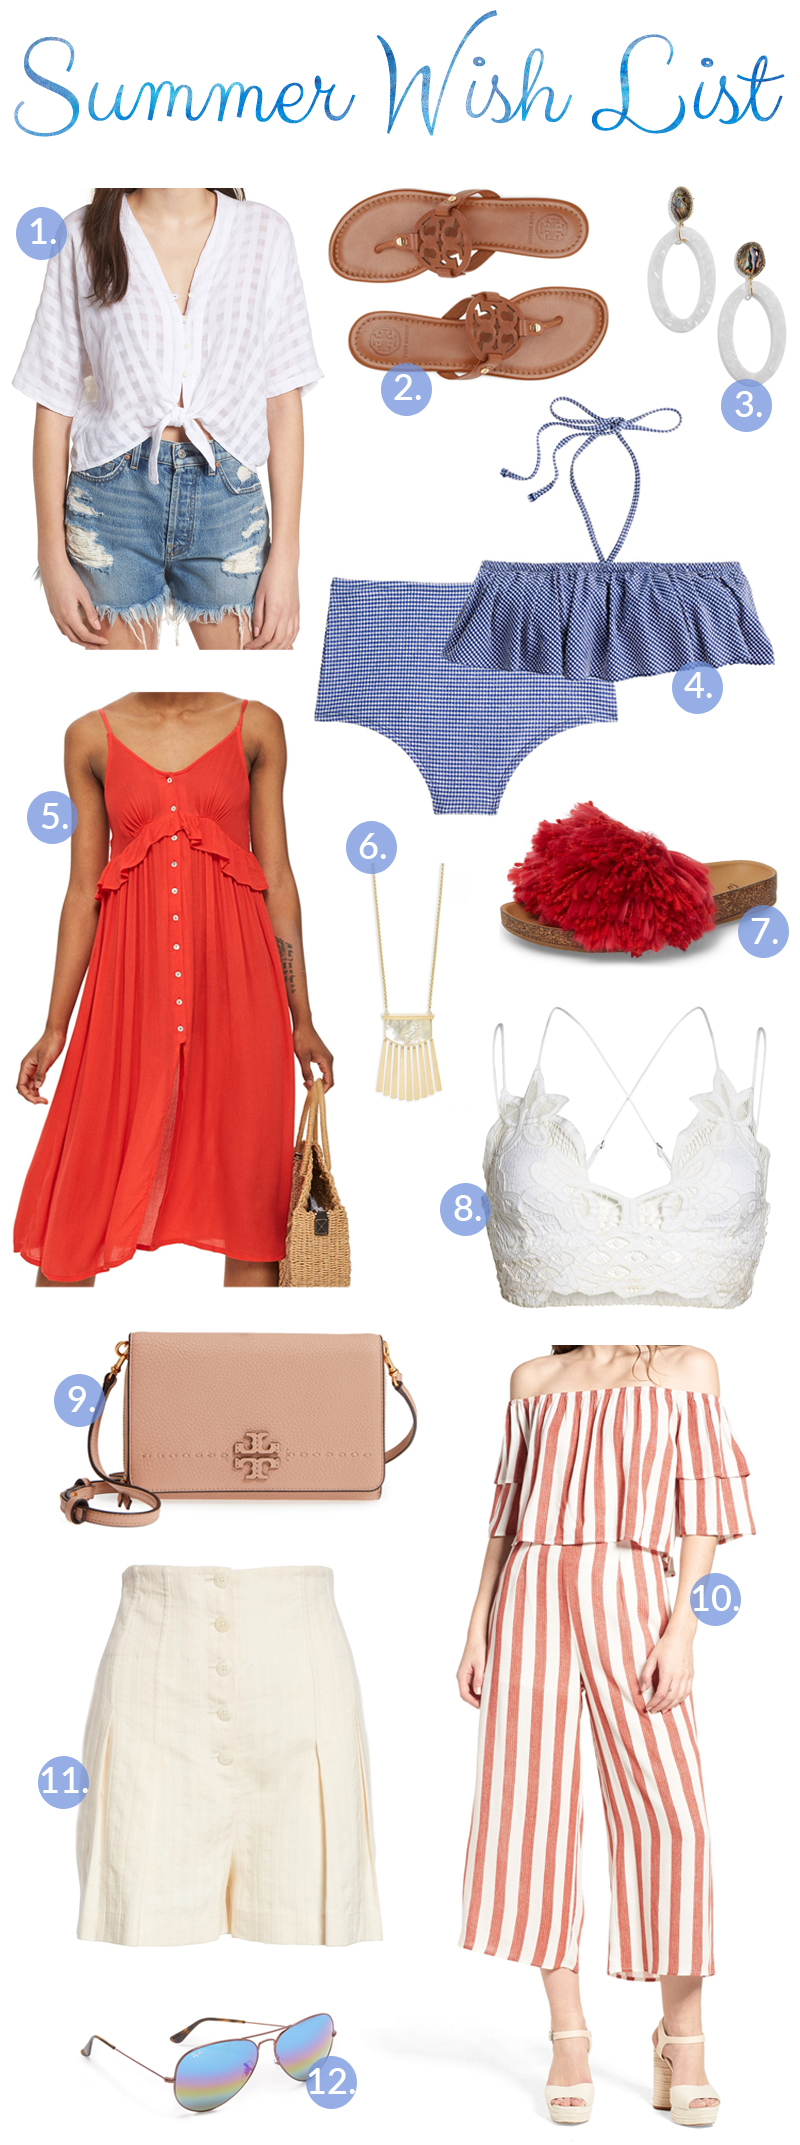 My Summer Fashion Wish List, featured by popular fashion blogger, Walking in Memphis in High Heels